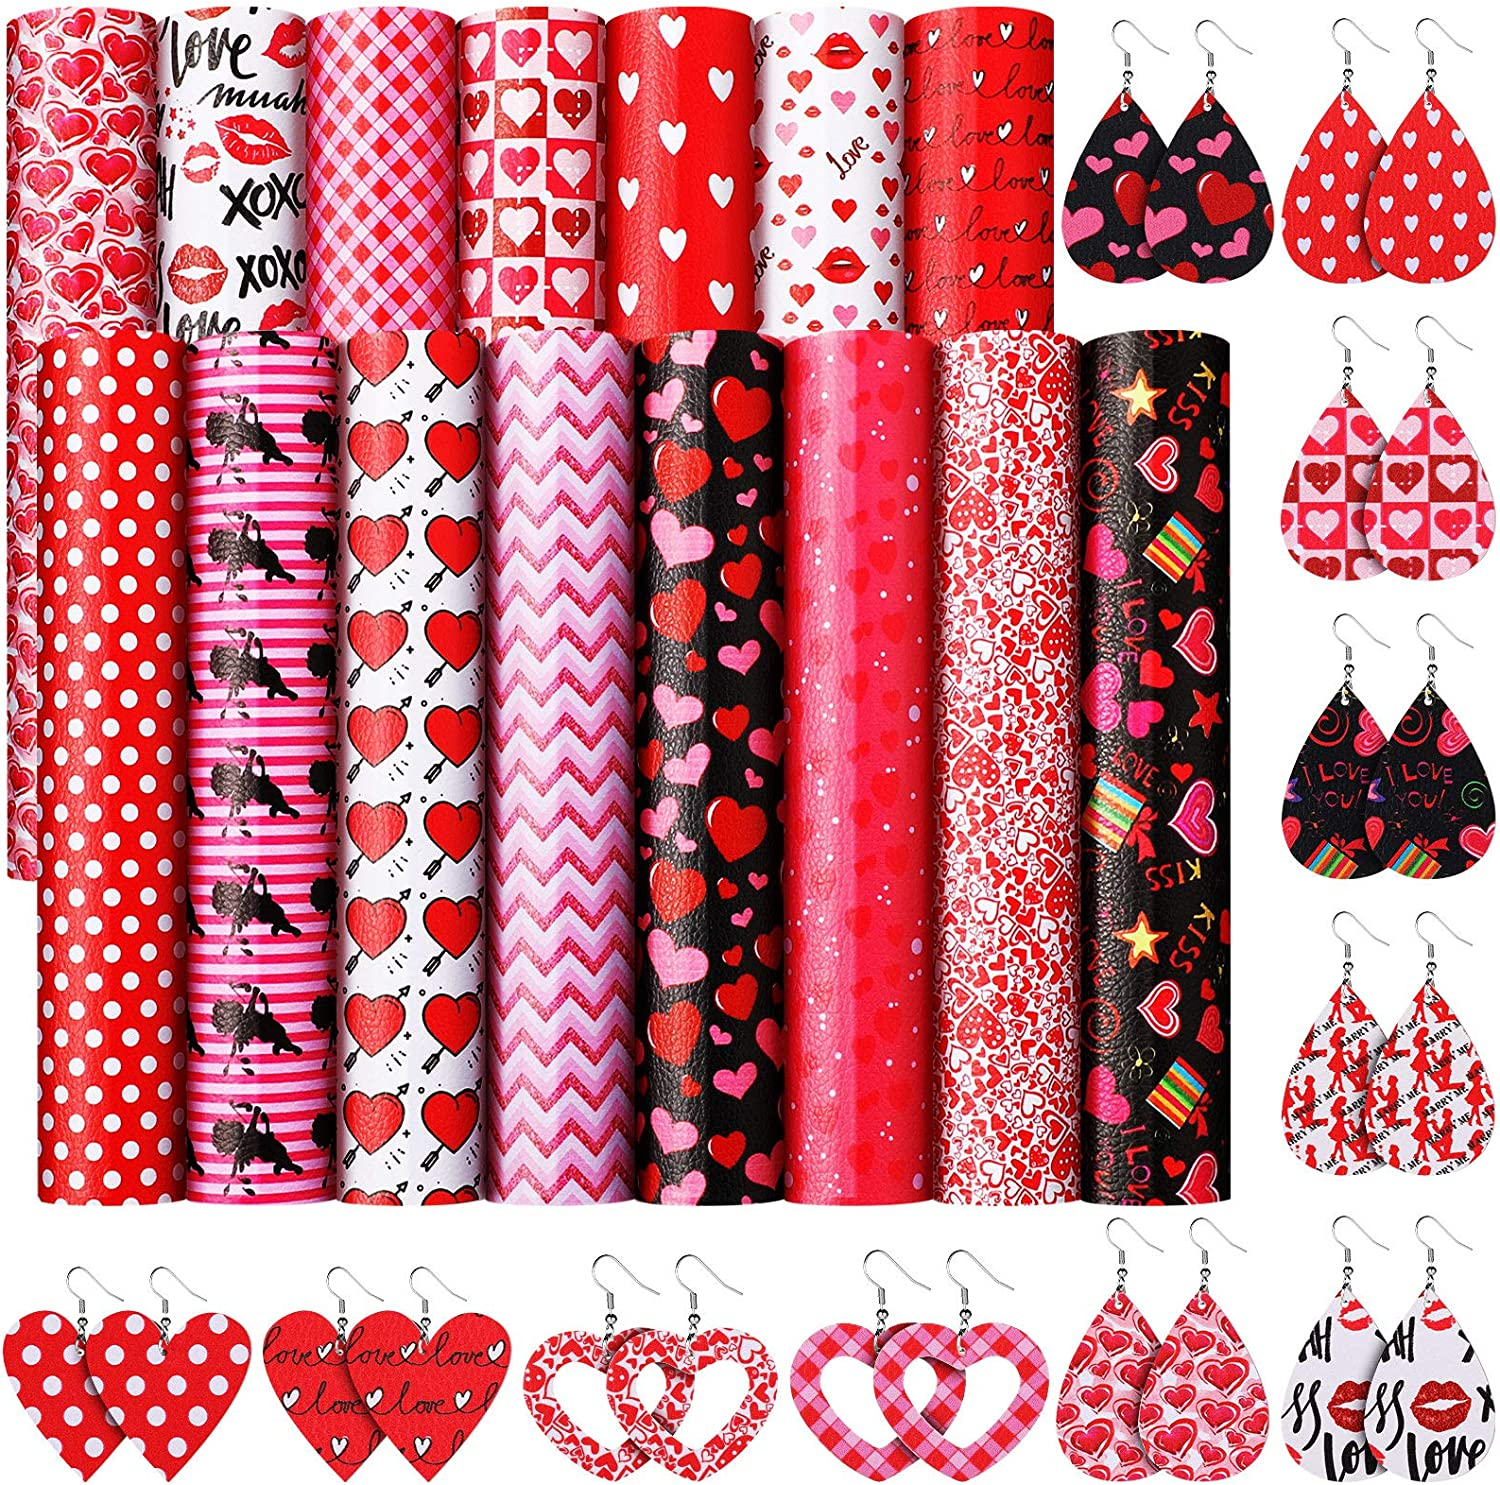 15 Pieces Valentines Day Faux Leather Sheets Heart Printed Faux Leather Fabric Light Glitter Assorted Love Leather Sheets for Making Earrings Hair Bows 8.3 x 6.3 Inch